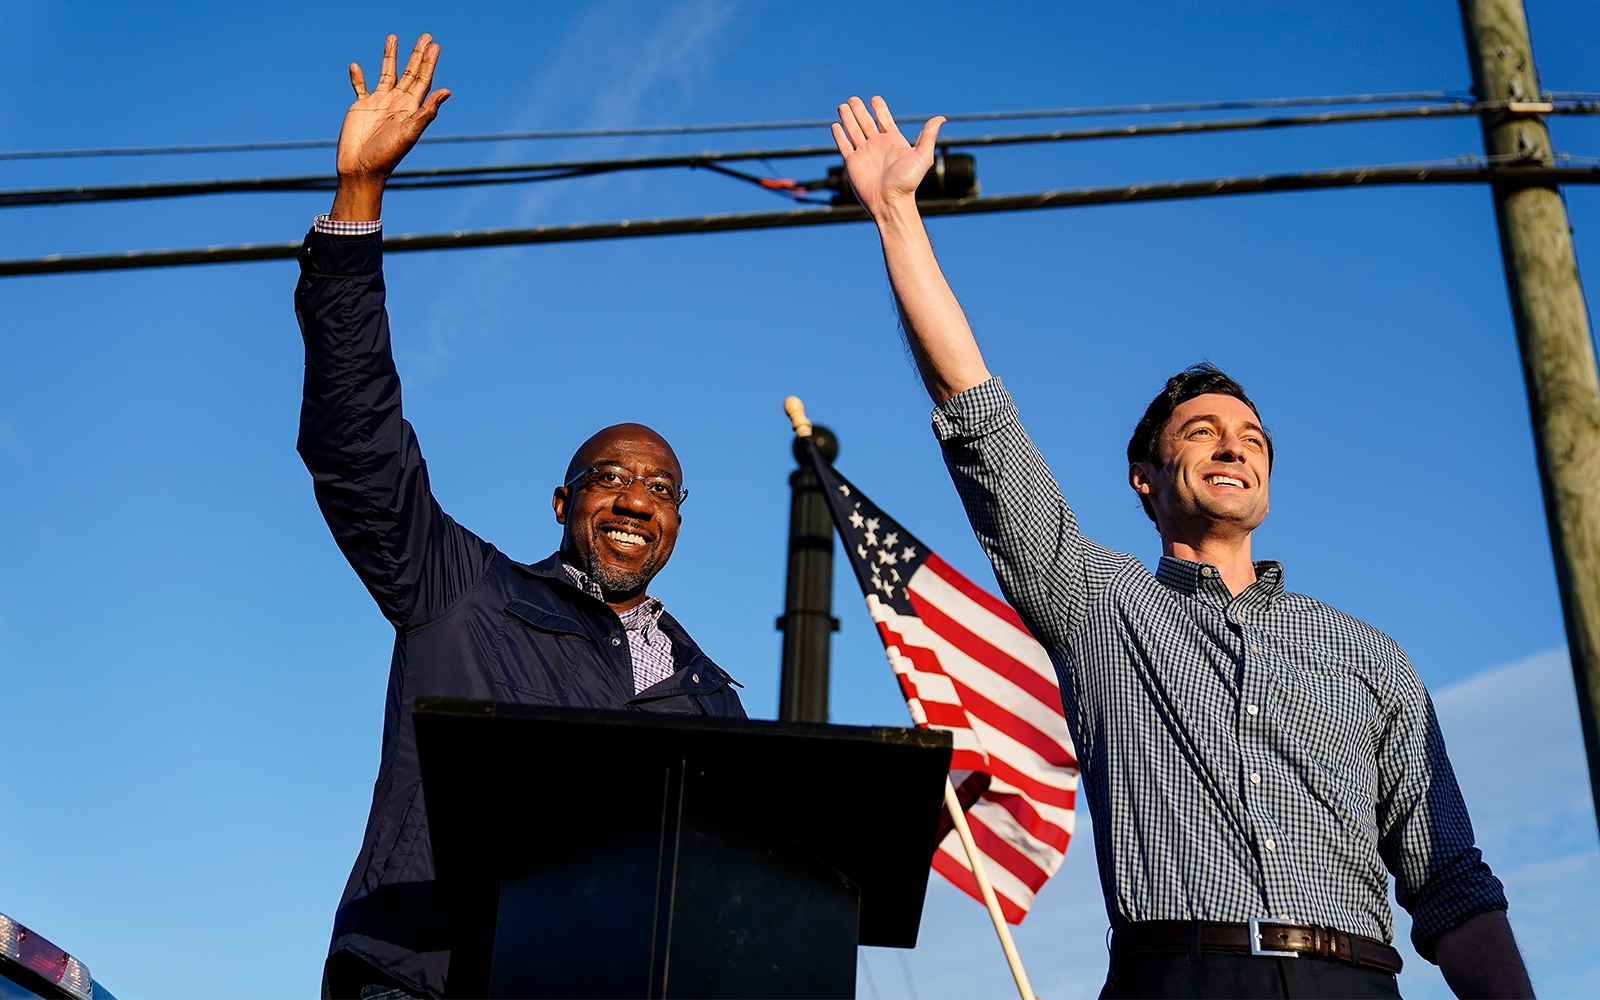 Jewish Democrats see Ossoff and Warnock as a heroic new Black-Jewish duo